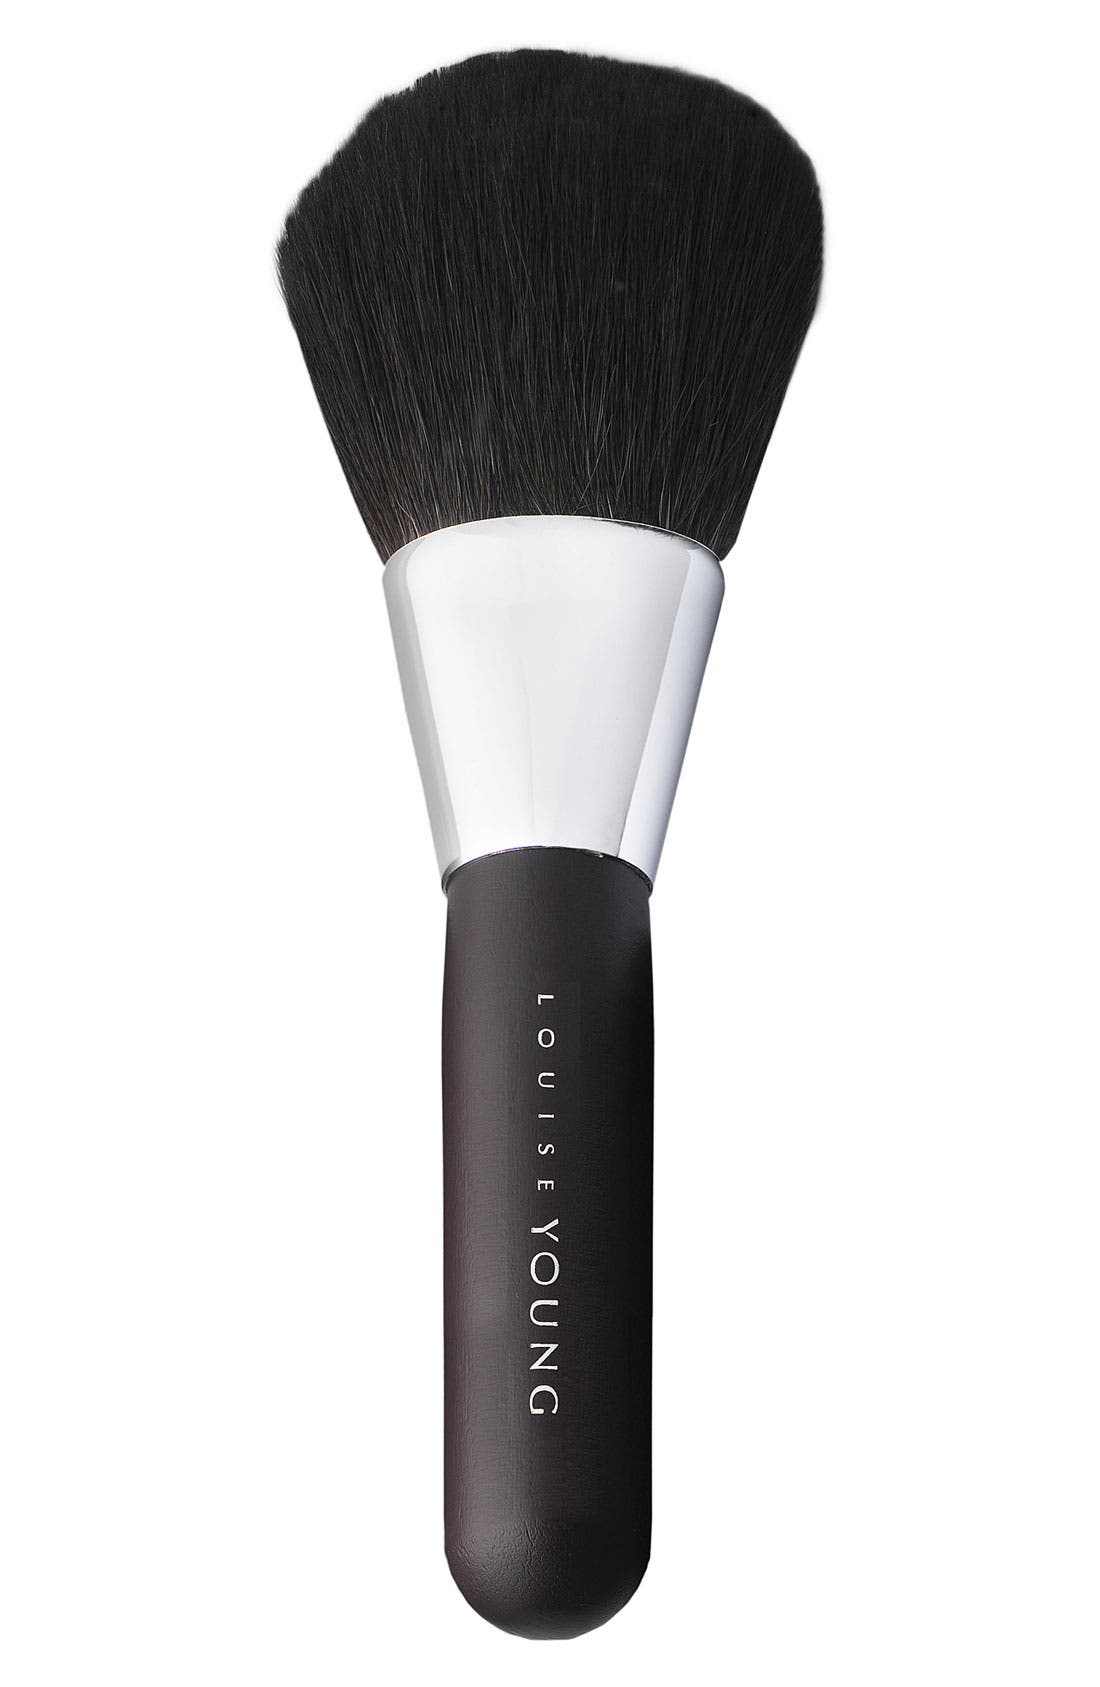 Louise Young Cosmetics LY07 Super Powder Brush